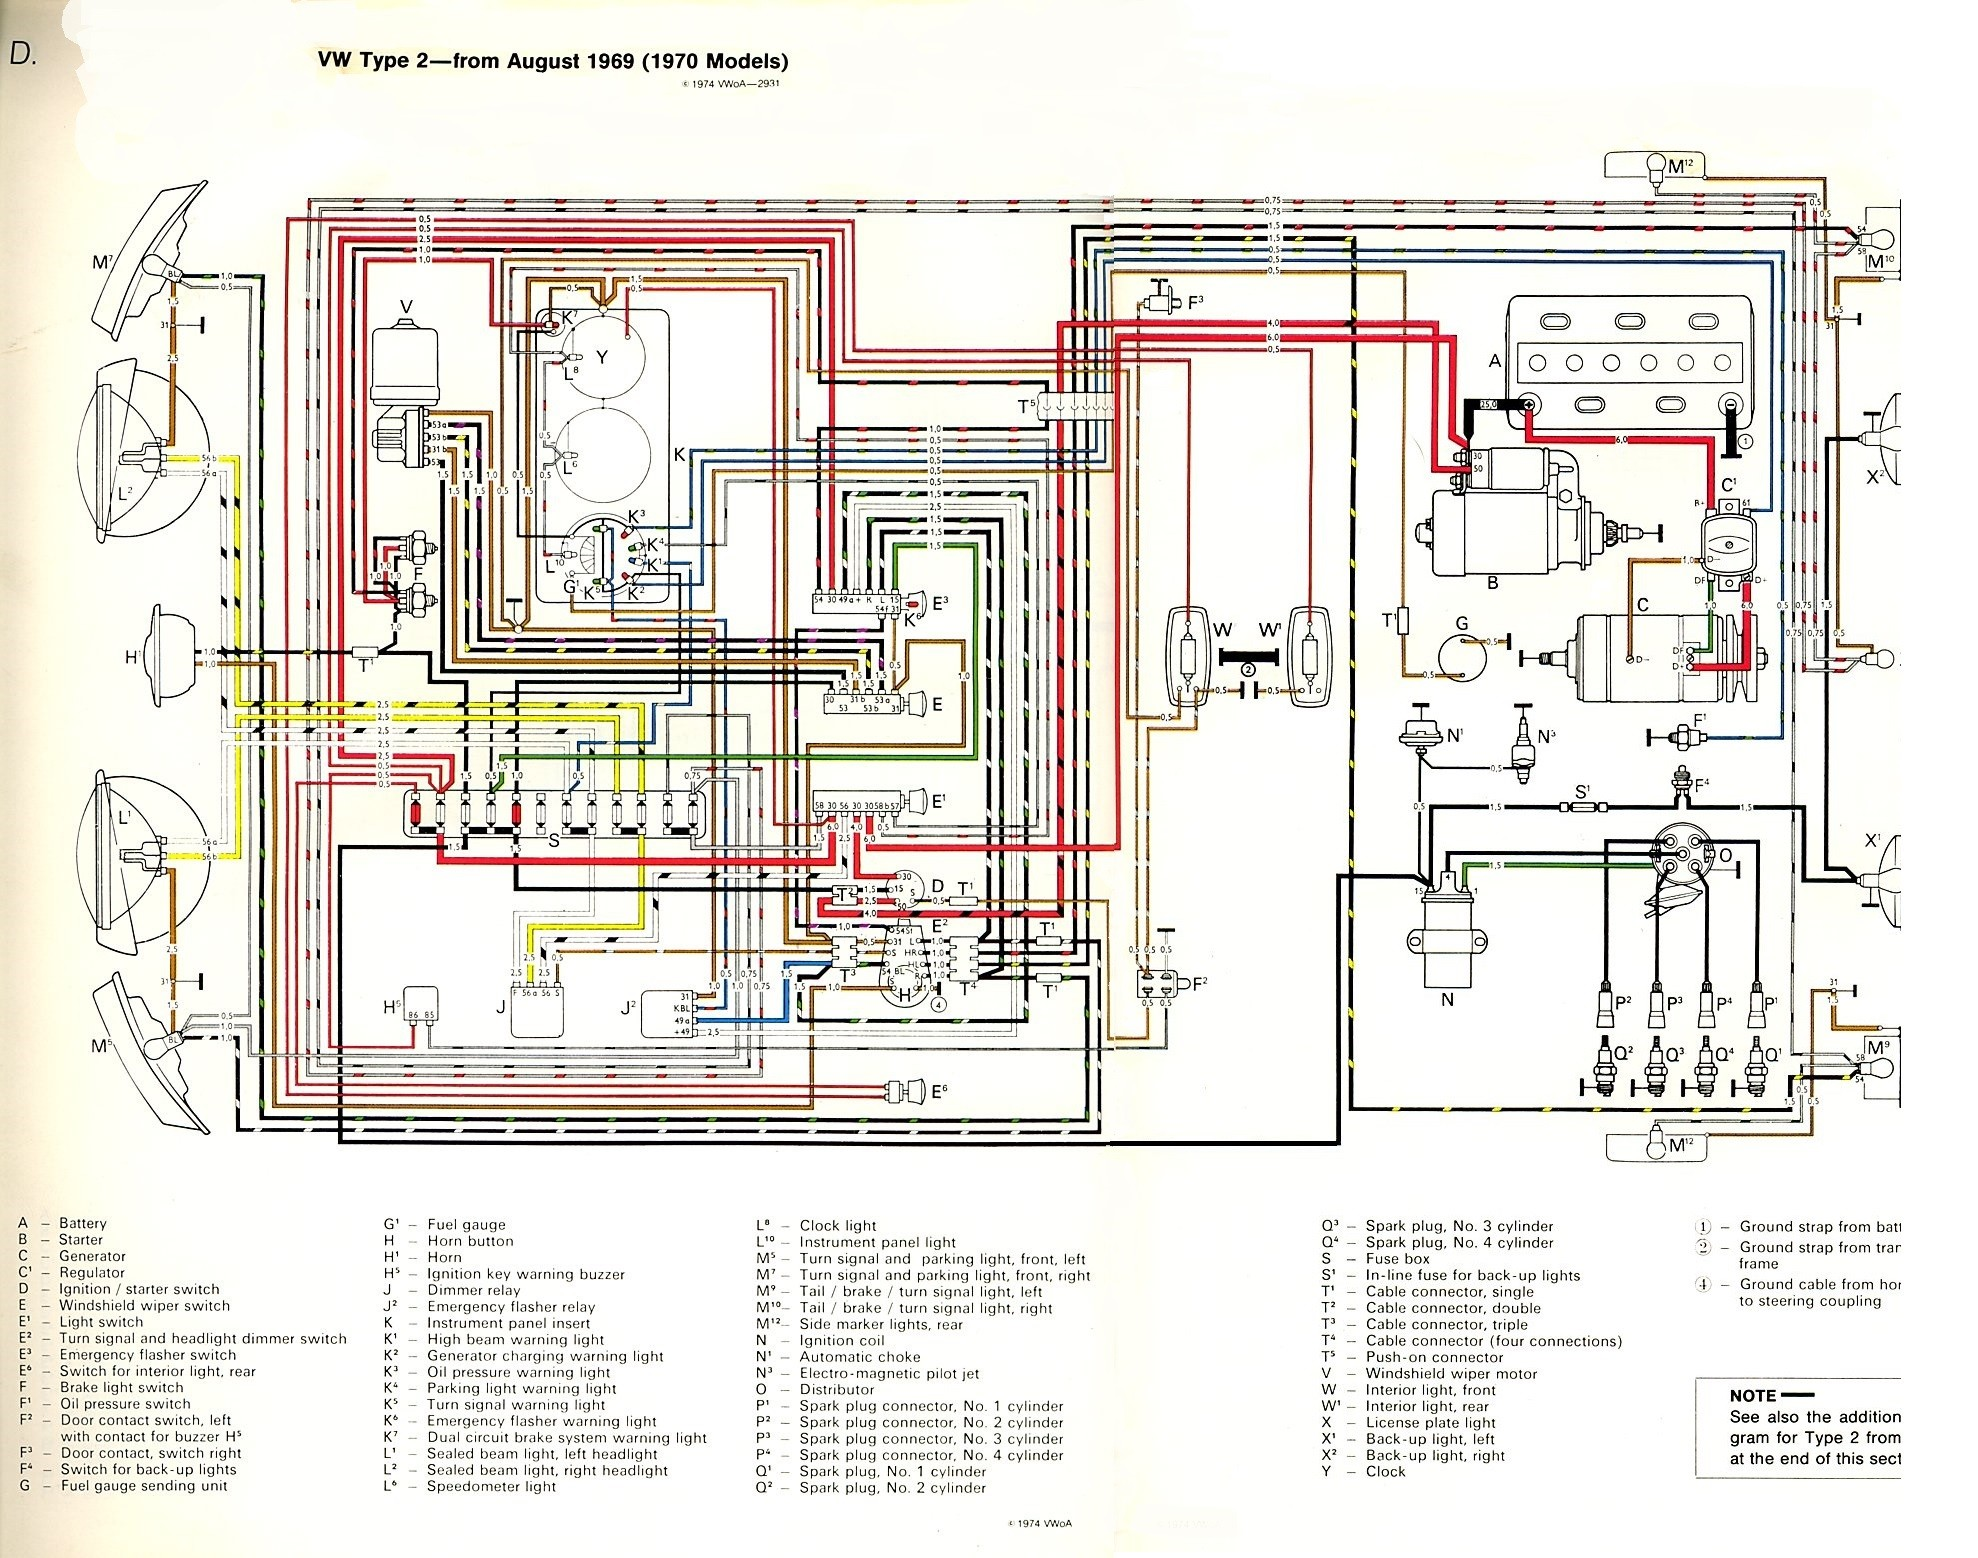 1971 chevelle dash wiring diagram 67 chevelle dash fuse box wiring diagram e6  67 chevelle dash fuse box wiring